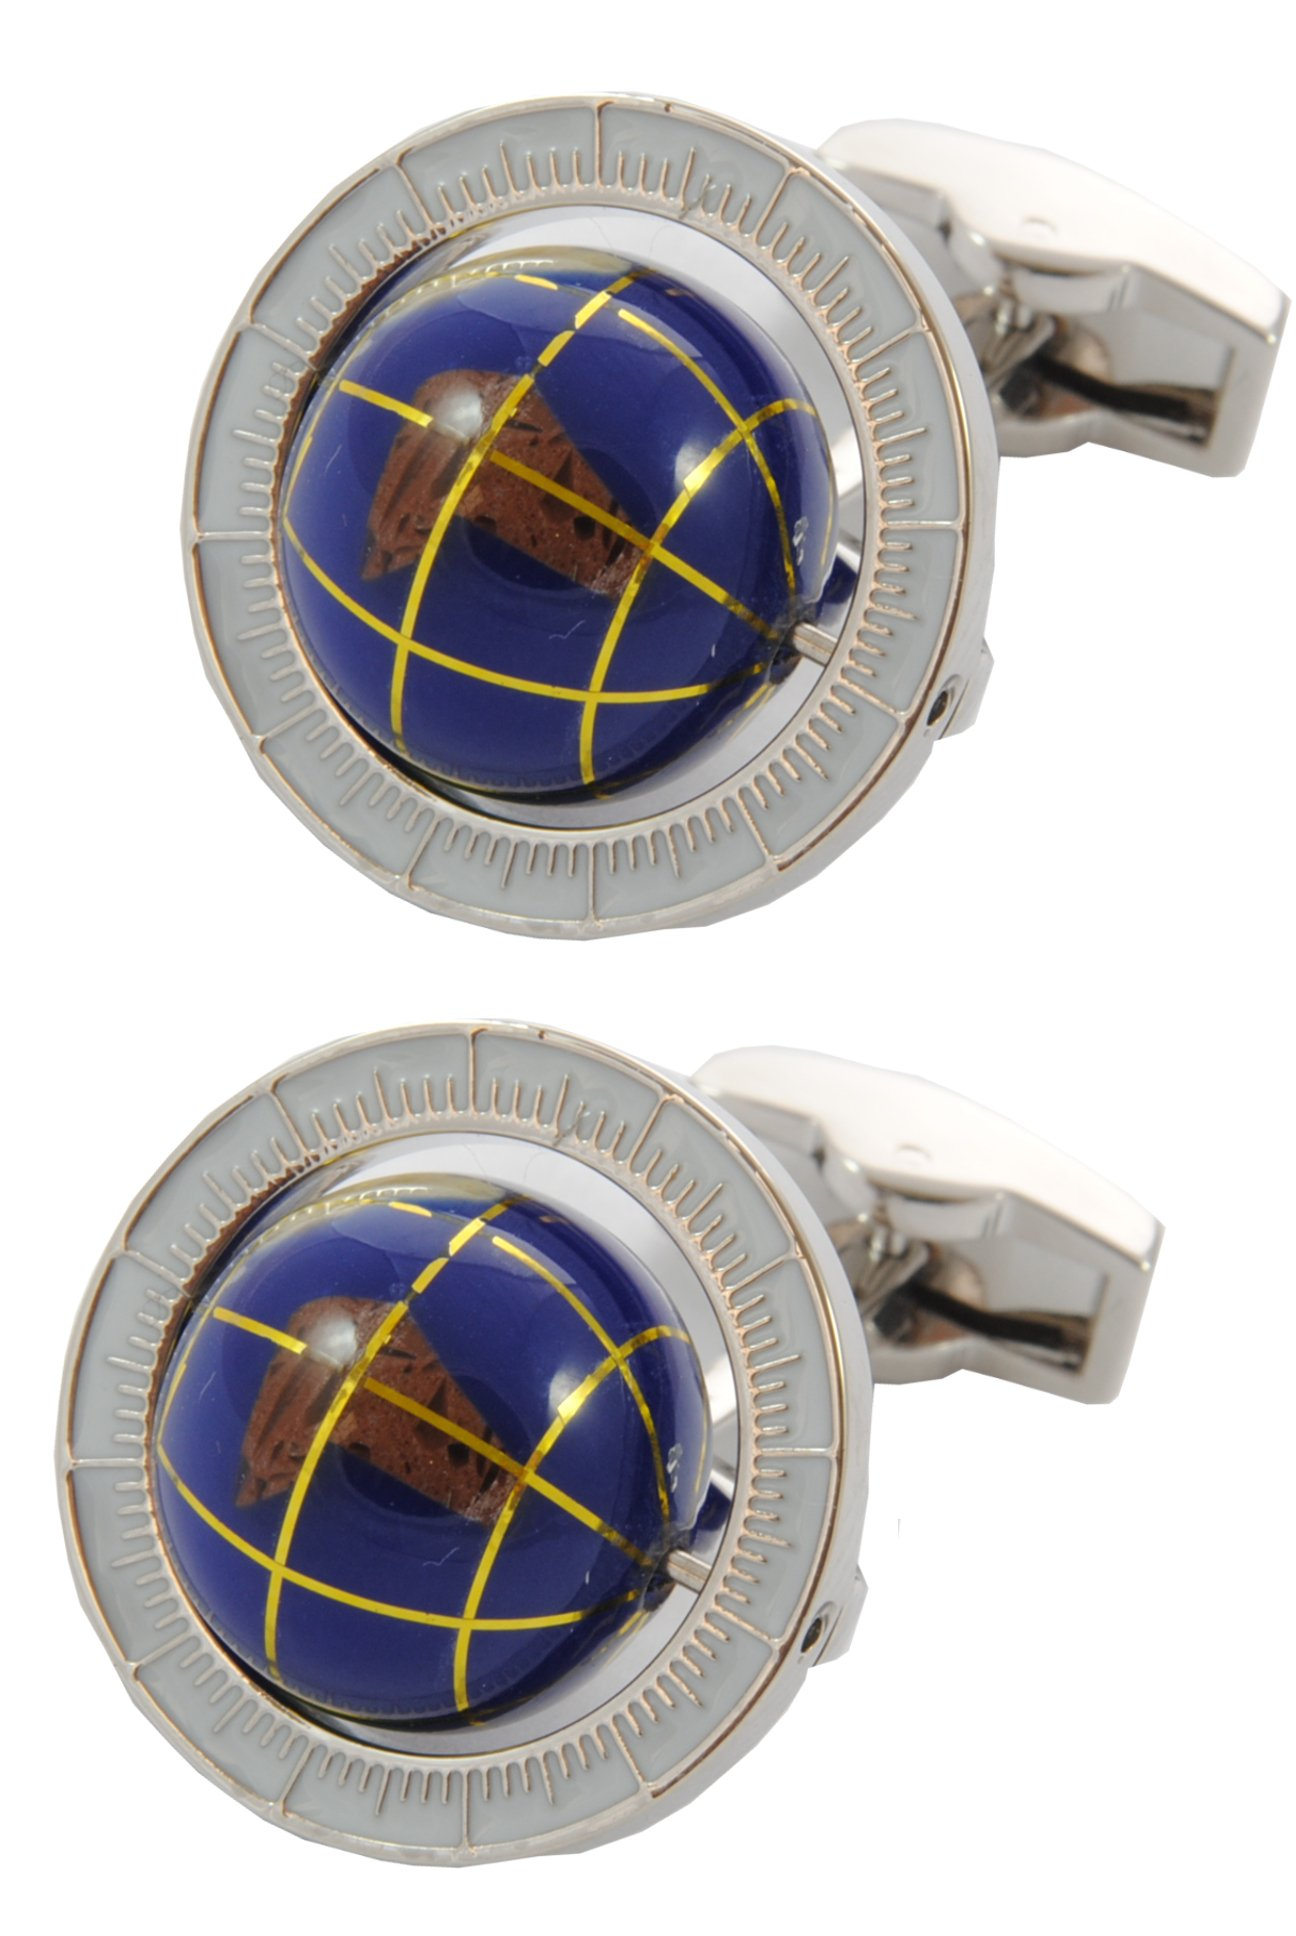 COLLAR AND CUFFS LONDON - PREMIUM Cufflinks WITH GIFT BOX - Spinning Globe - Travel the World - Round Earth Rotating - Blue Colour